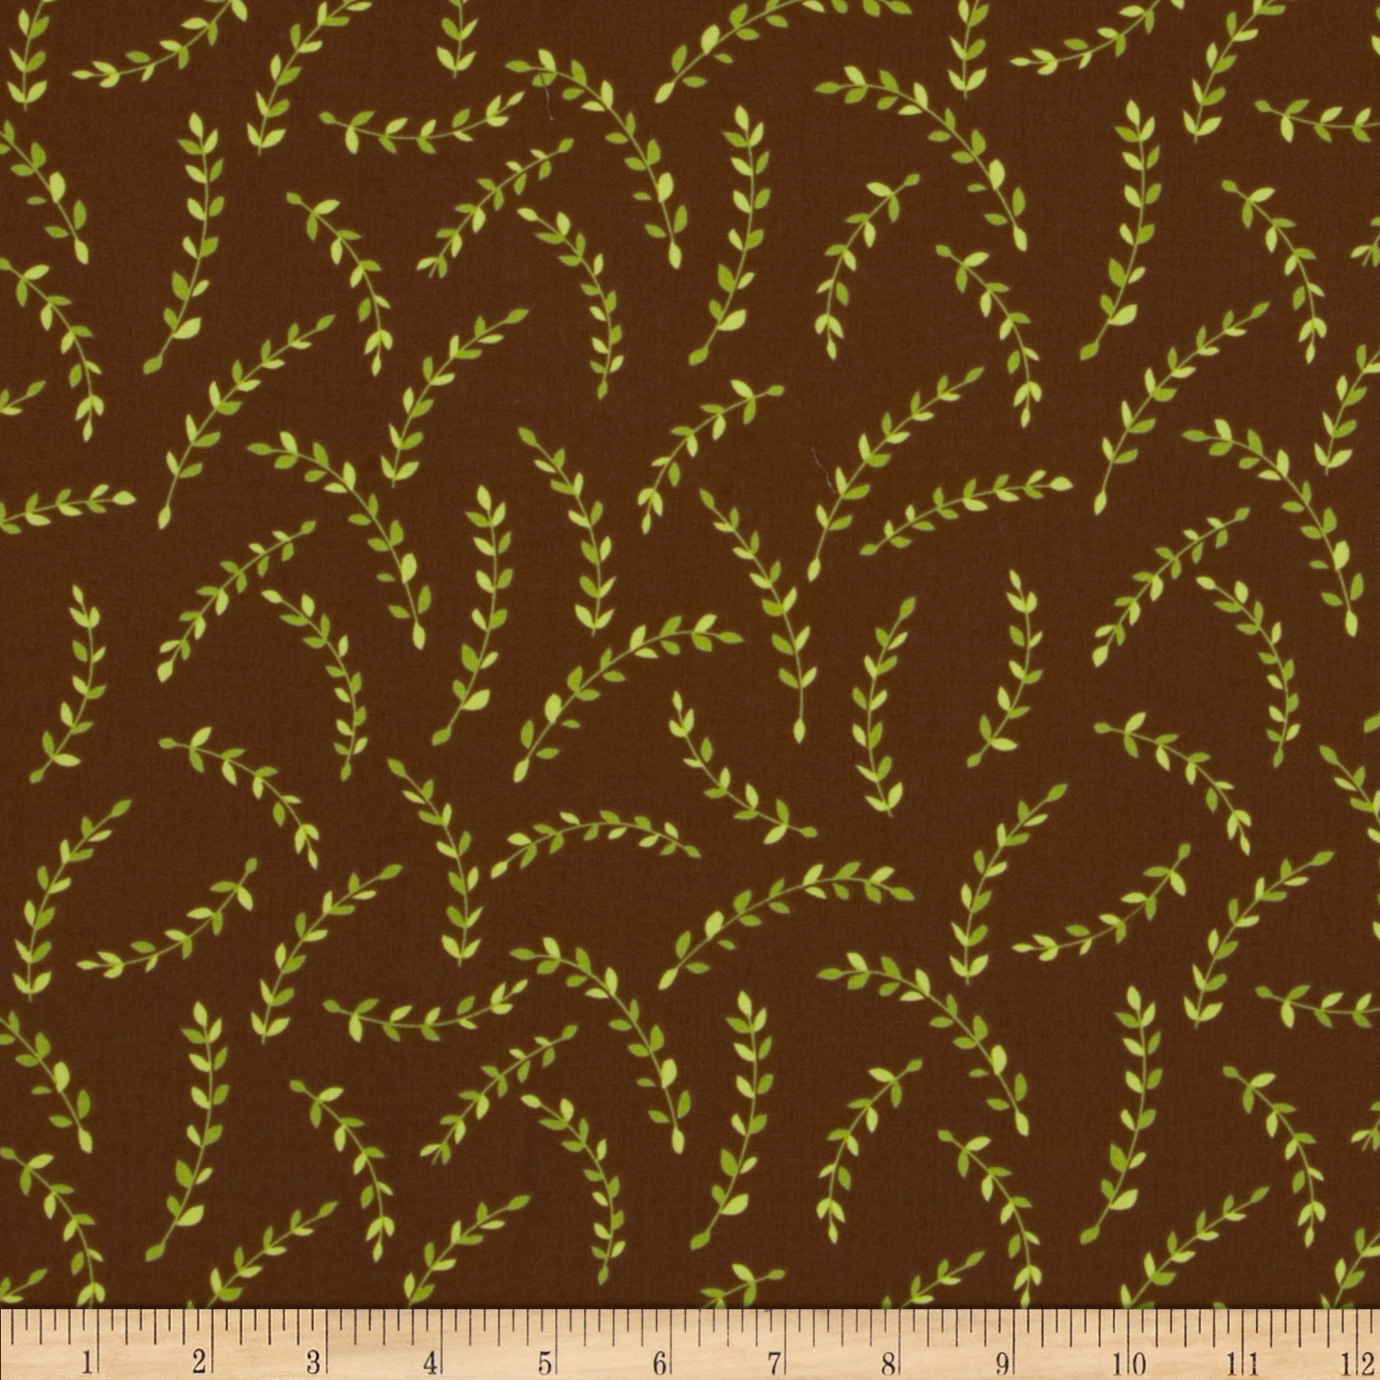 Knock Knock Vines Brown Fabric